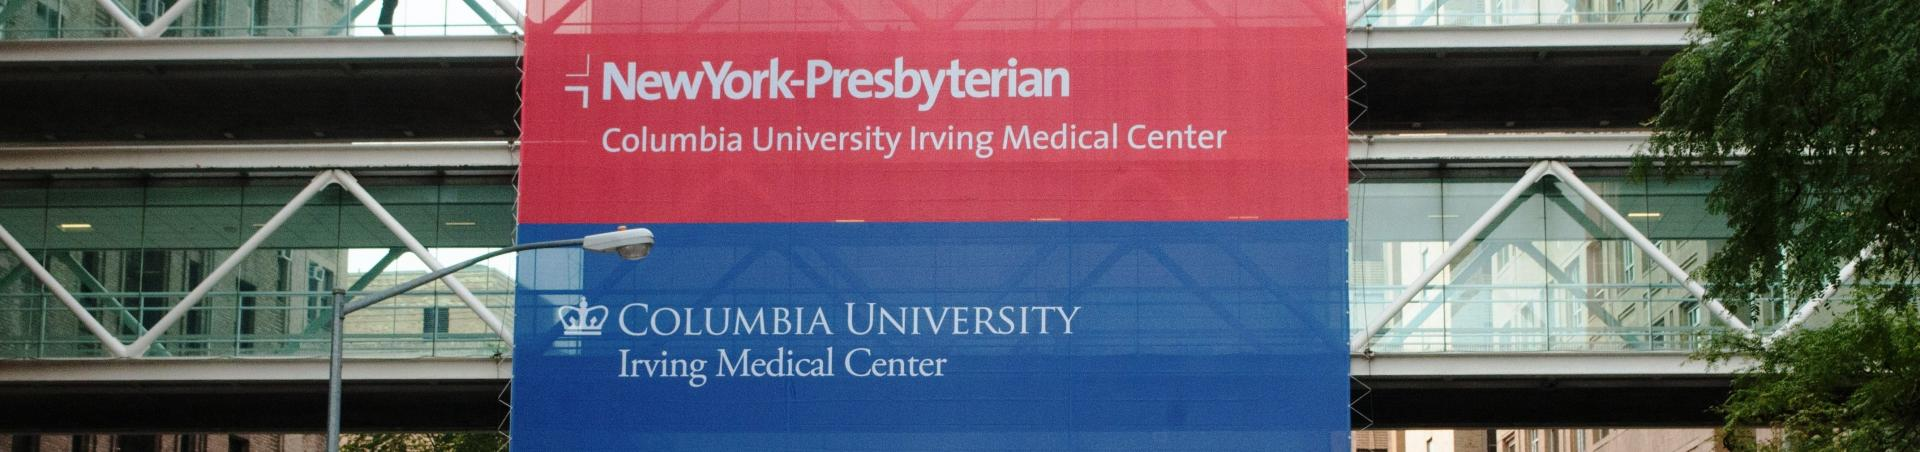 Signs for NYPH and CUMC hanging from buidling skywalk